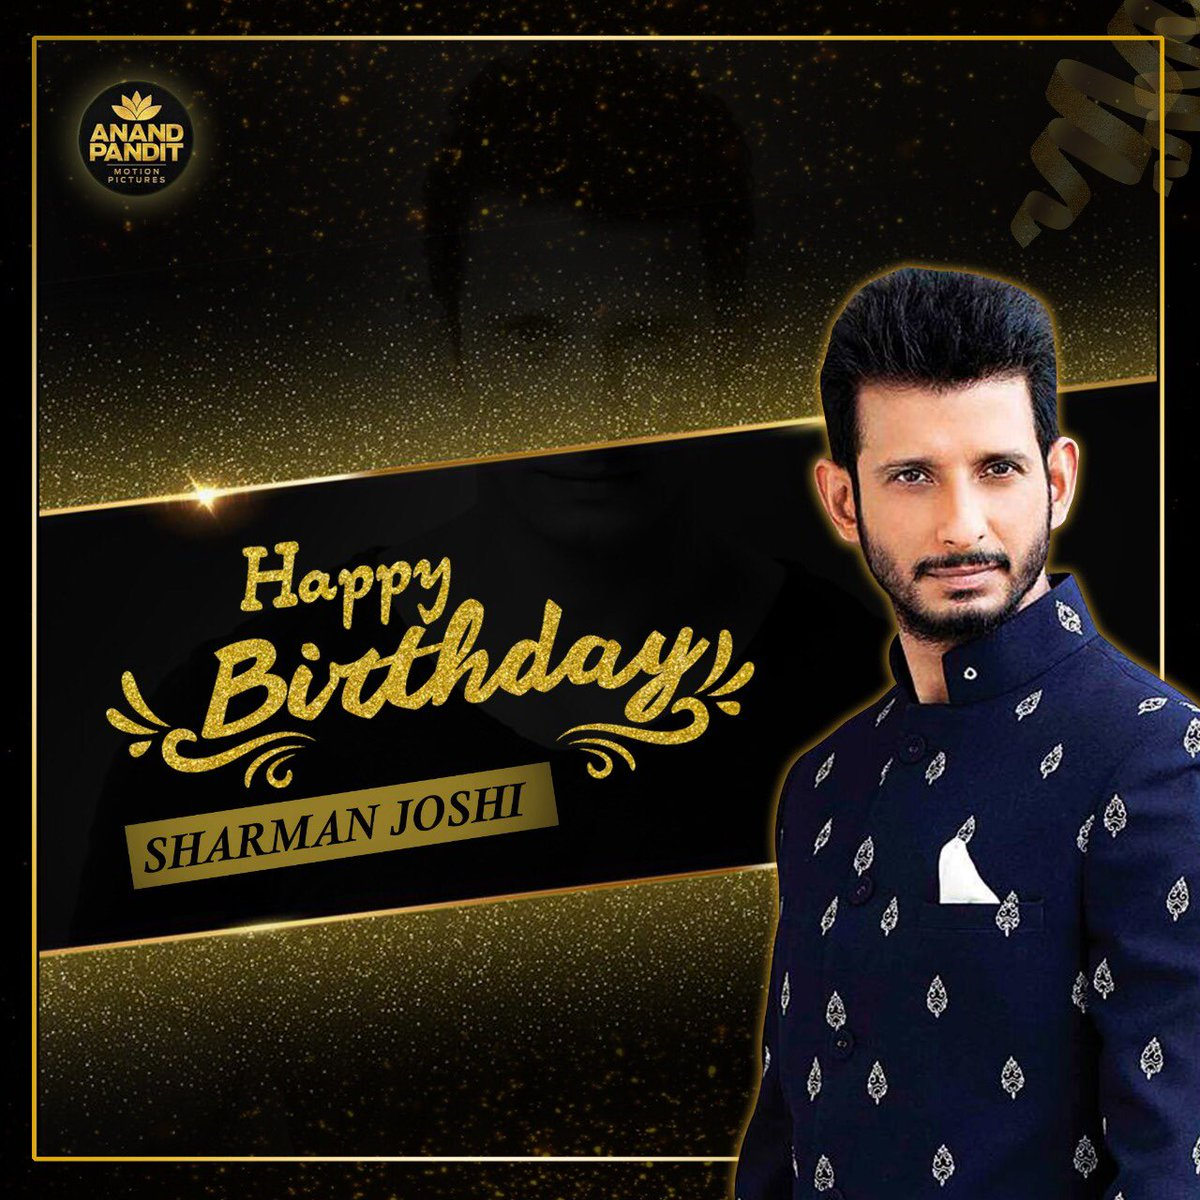 Wishing my friend, the extremely talented @TheSharmanJoshi a very happy birthday. Your knack for comedy and spontaneity are unmatchable! May this year bring you even more success and an abundance of happiness!  #HappyBirthday #HappyBirthdaySharmanJoshi https://t.co/McULsvgvnz